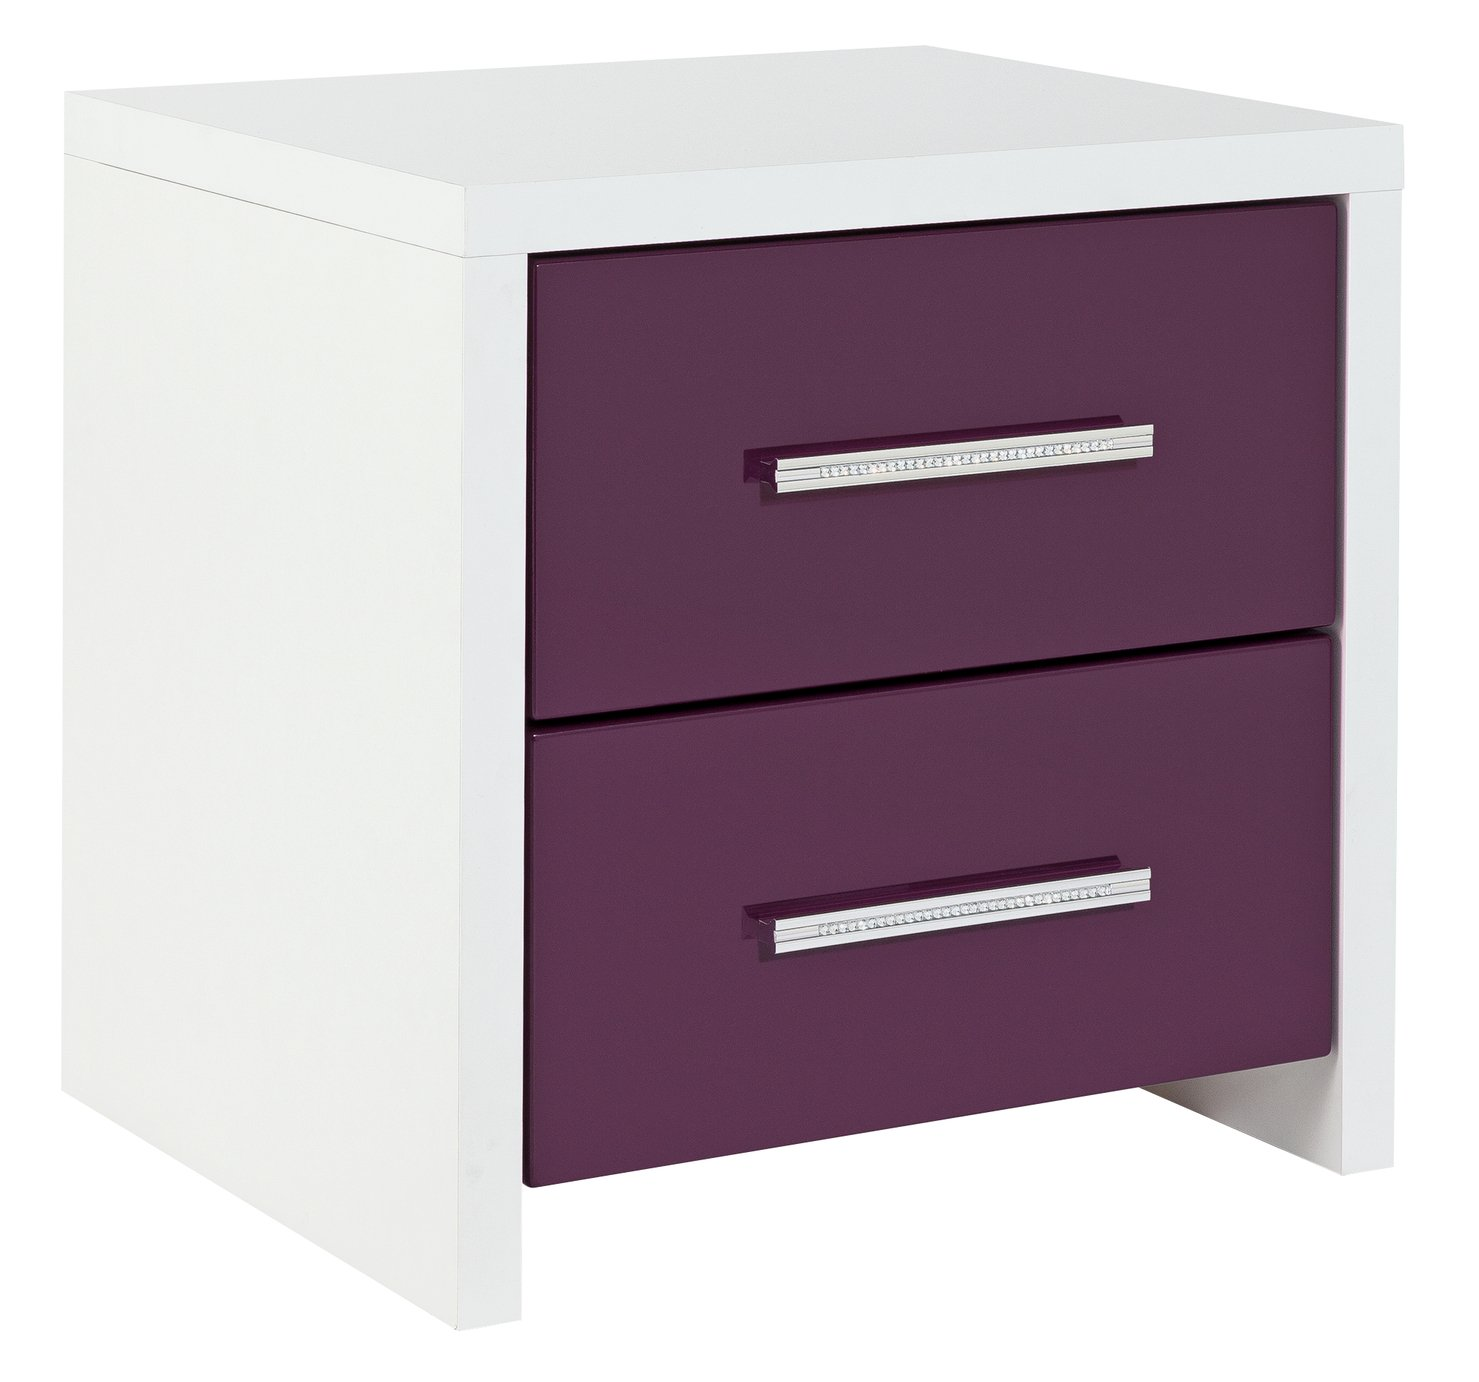 Argos Home Broadway 2 Drw Bedside Chest